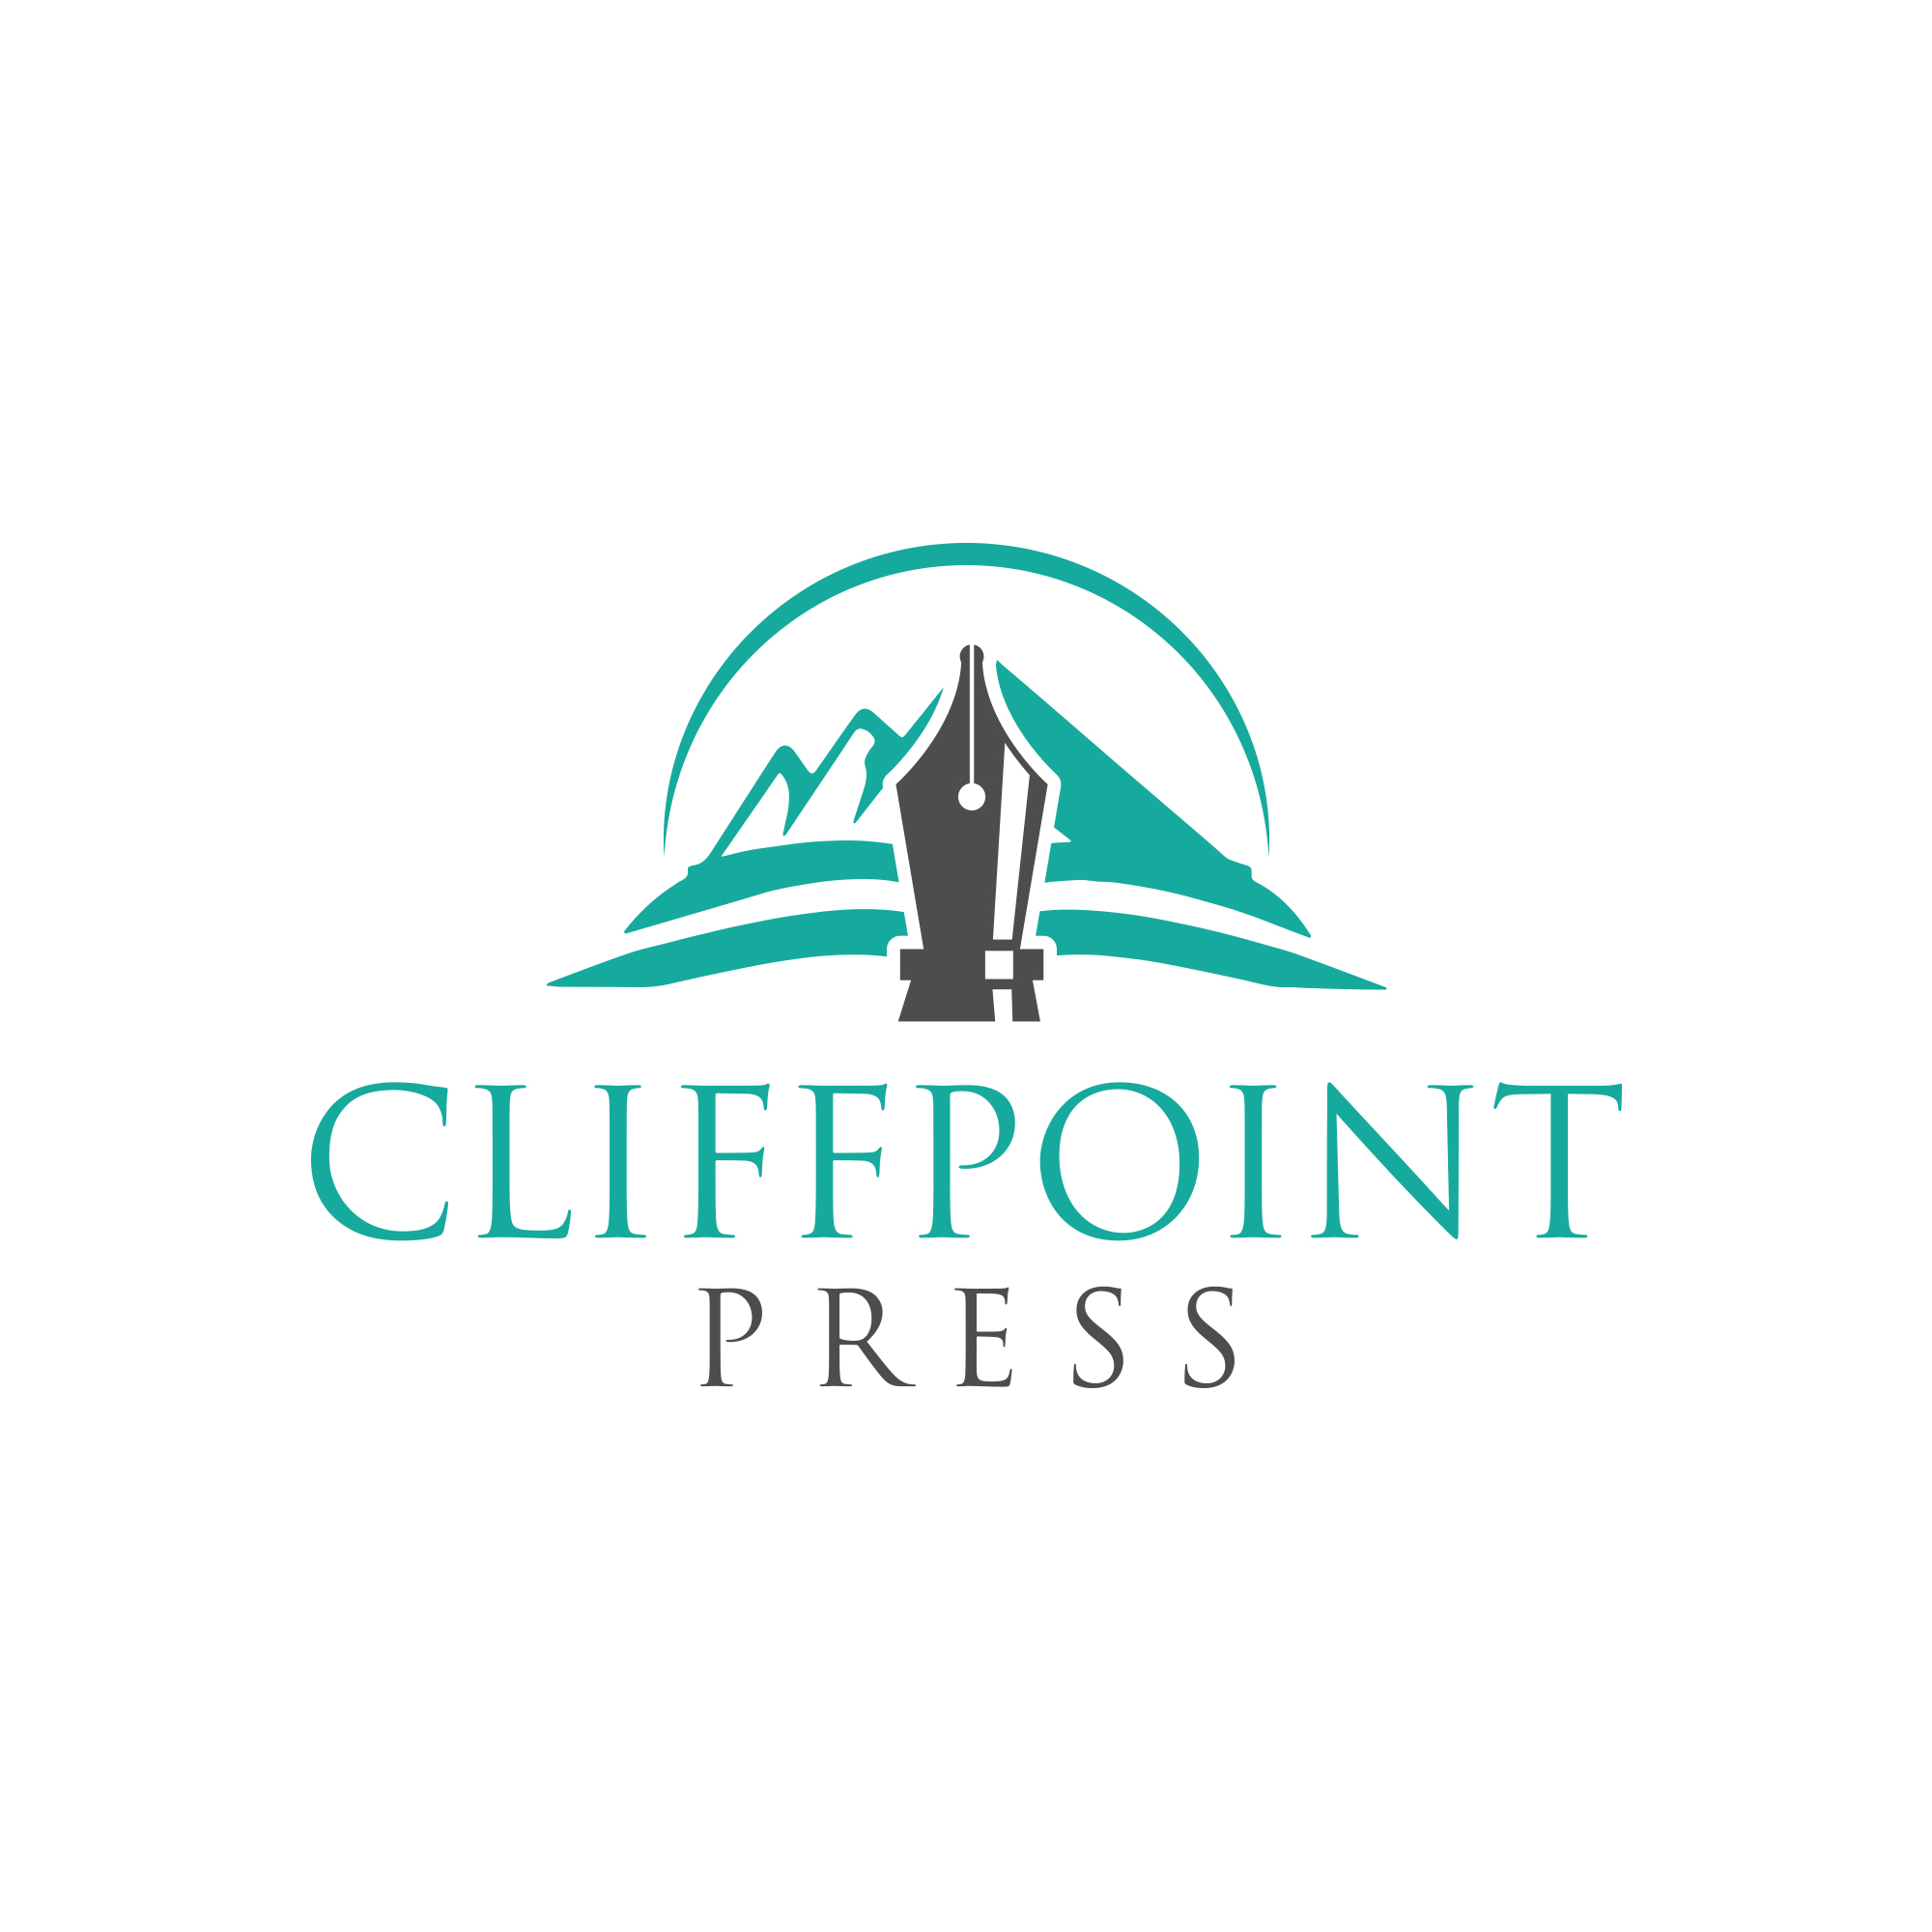 Cliffpoint Press